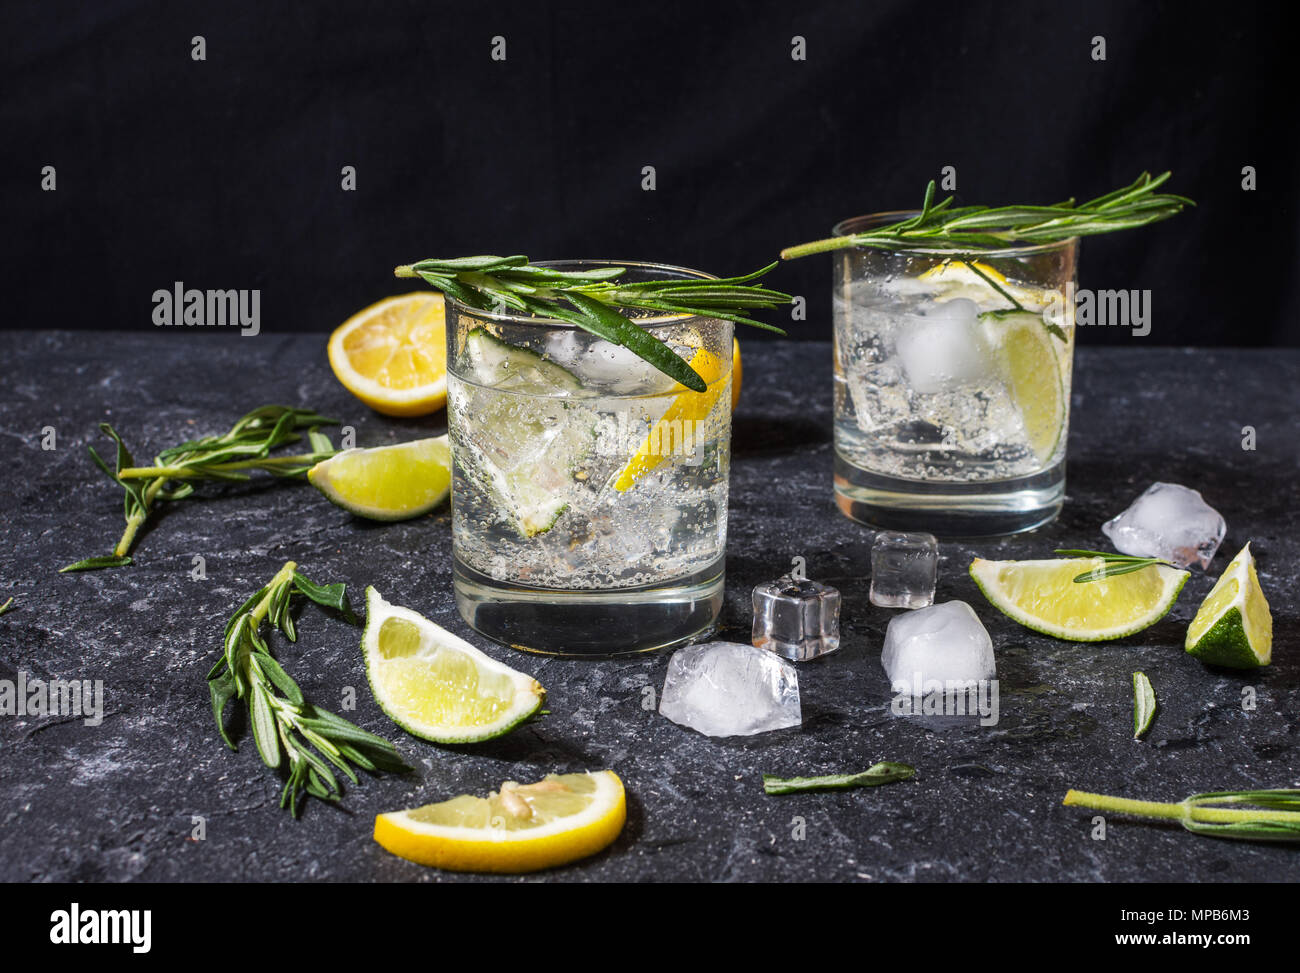 Alcoholic drink gin tonic cocktail with lemon, rosemary and ice on stone table. Stock Photo